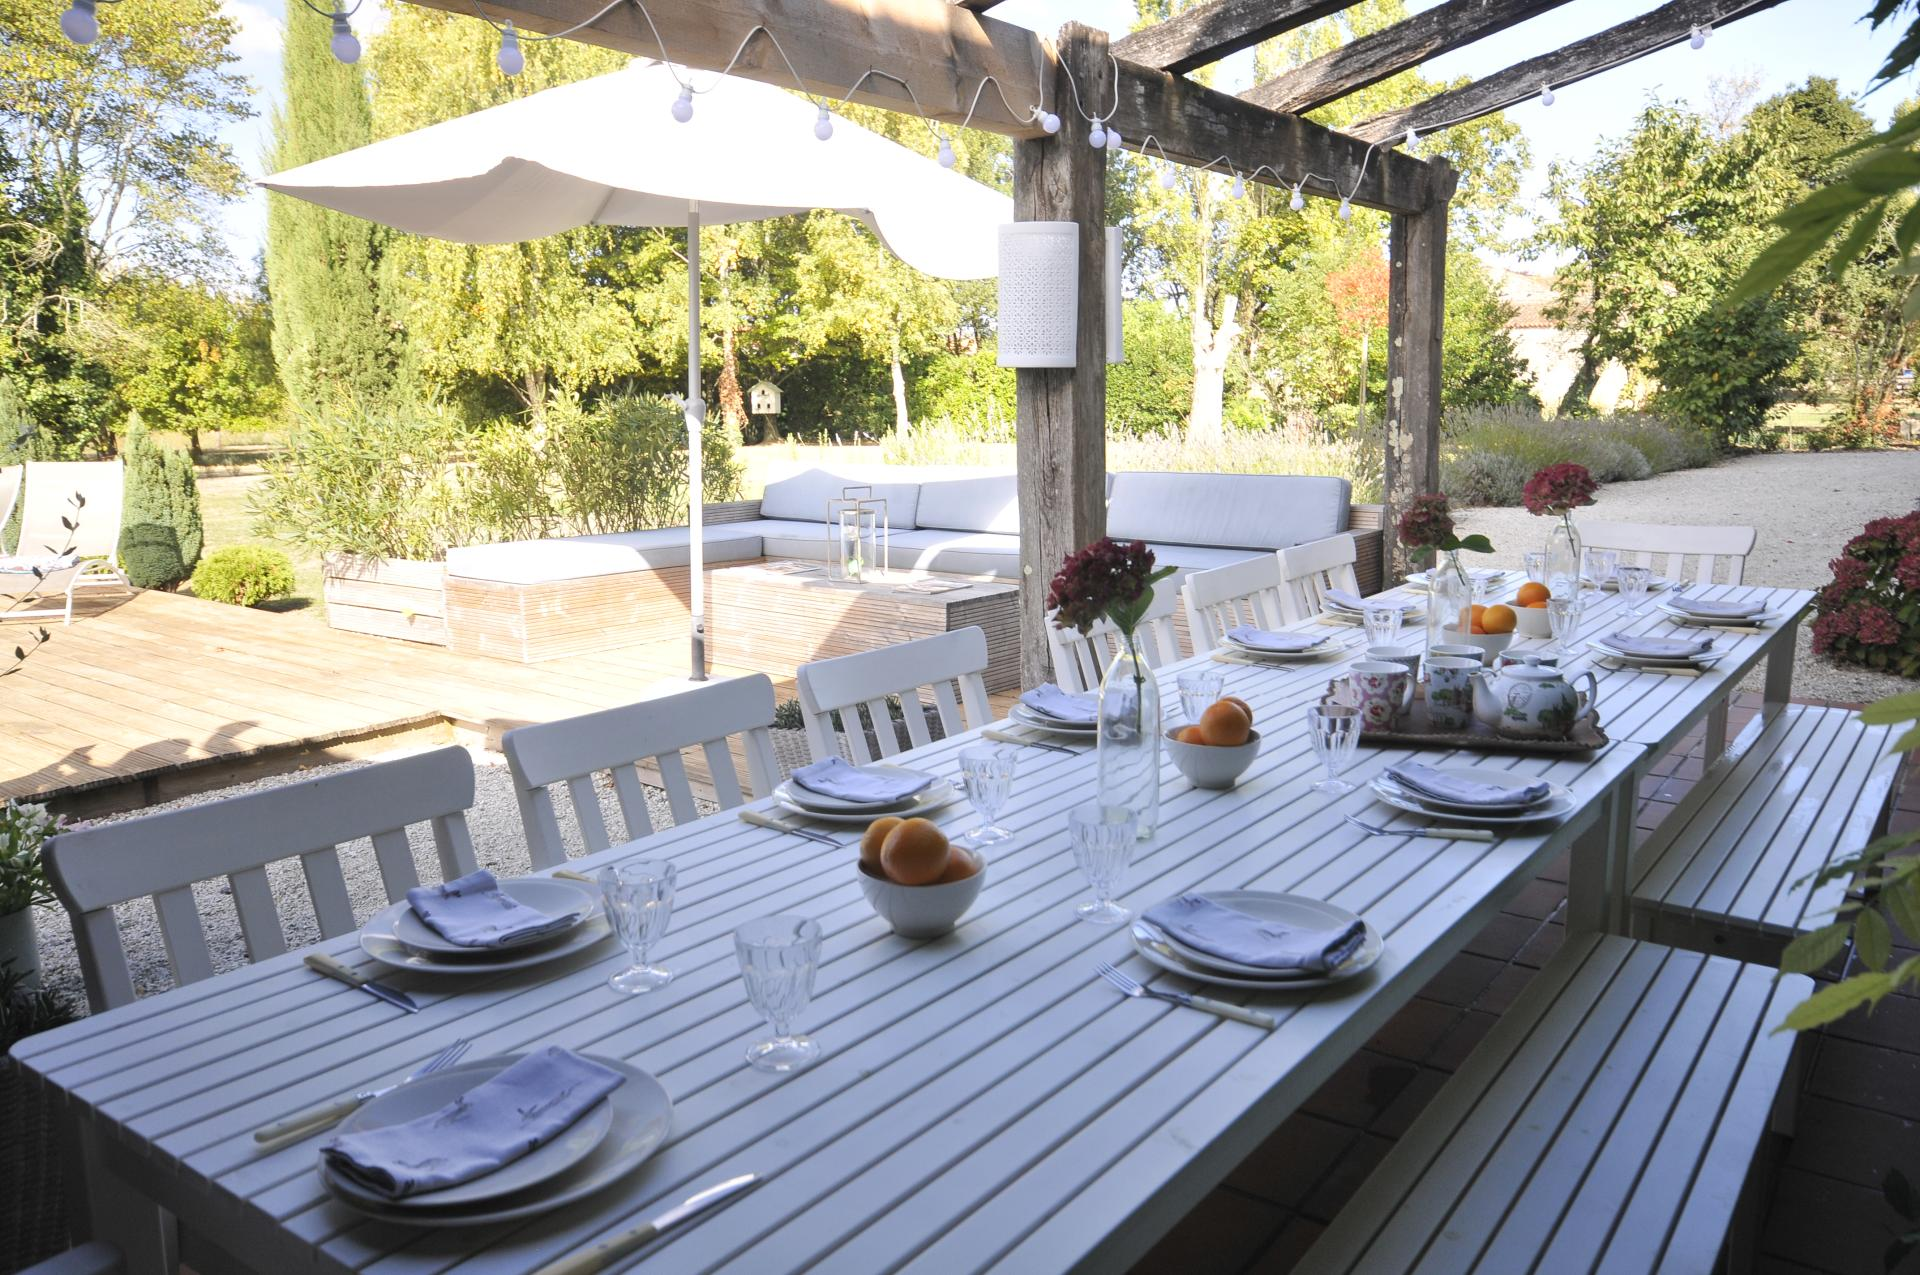 Outdoor Dining Table, Ferme Verger, Fontenay le Comte, Vendee Charente.